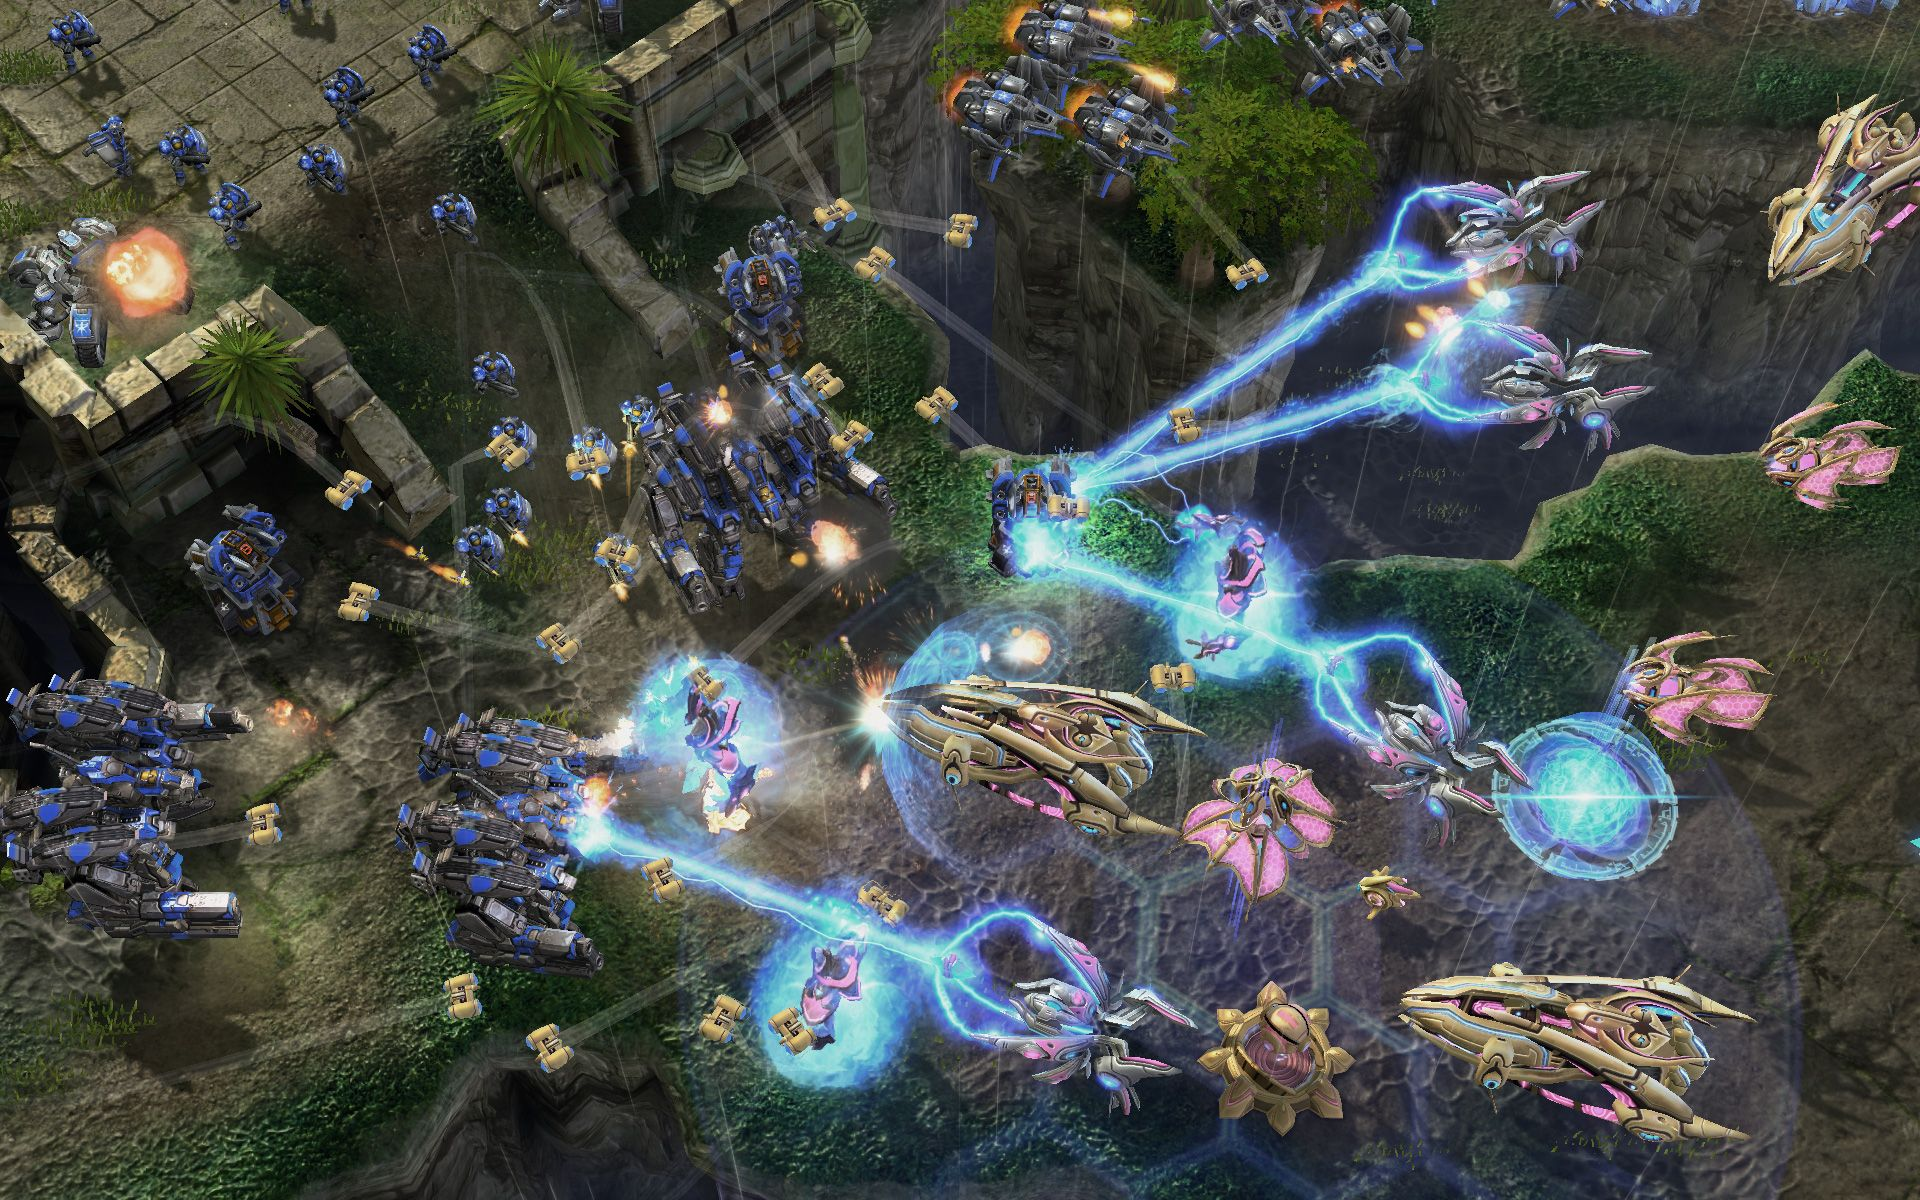 StarCraft 2 is going free-to-play later this month